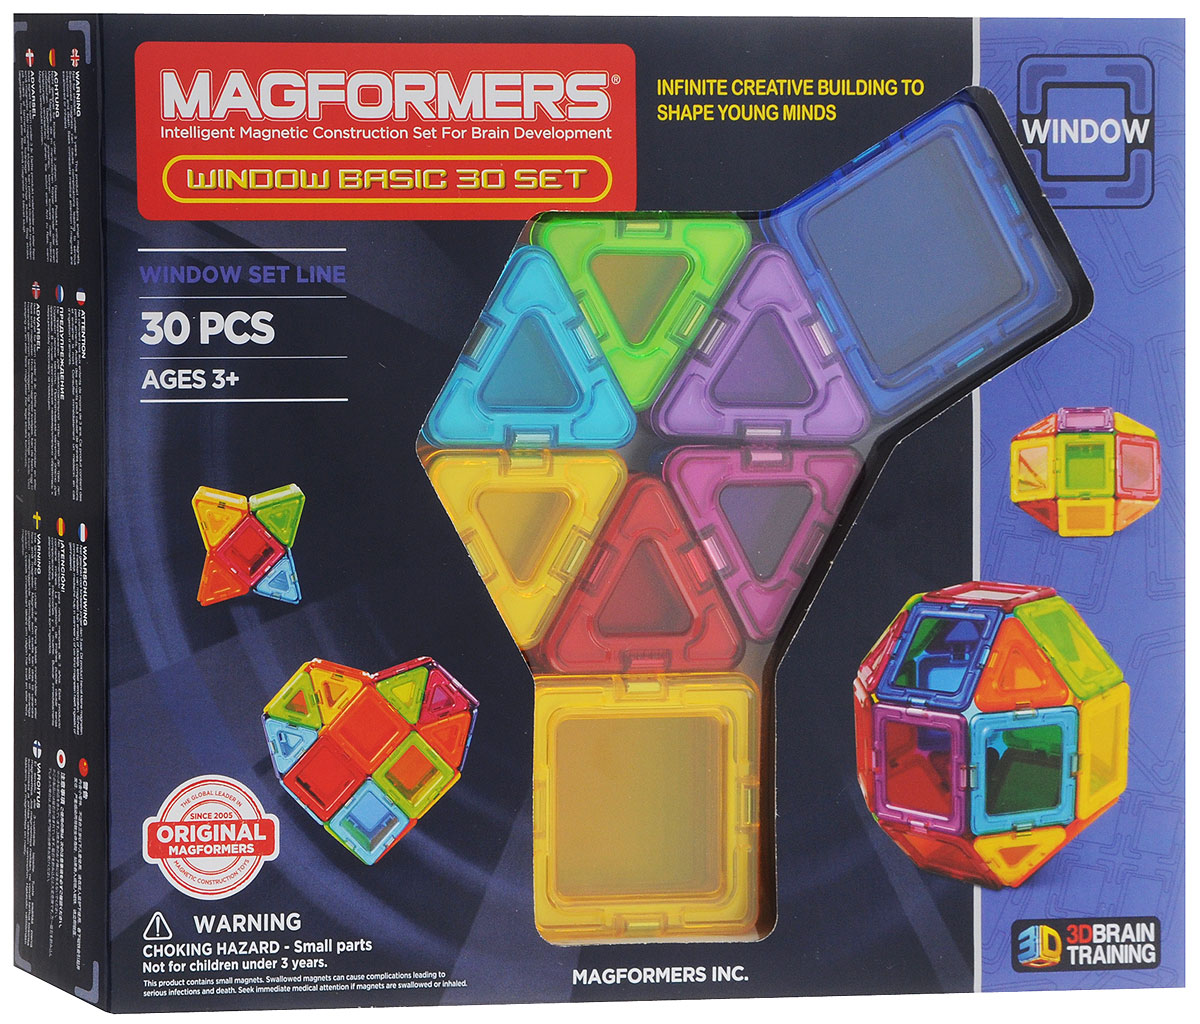 Magformers Магнитный конструктор Window Basic 30 Set magformers window basic 14 set 714001